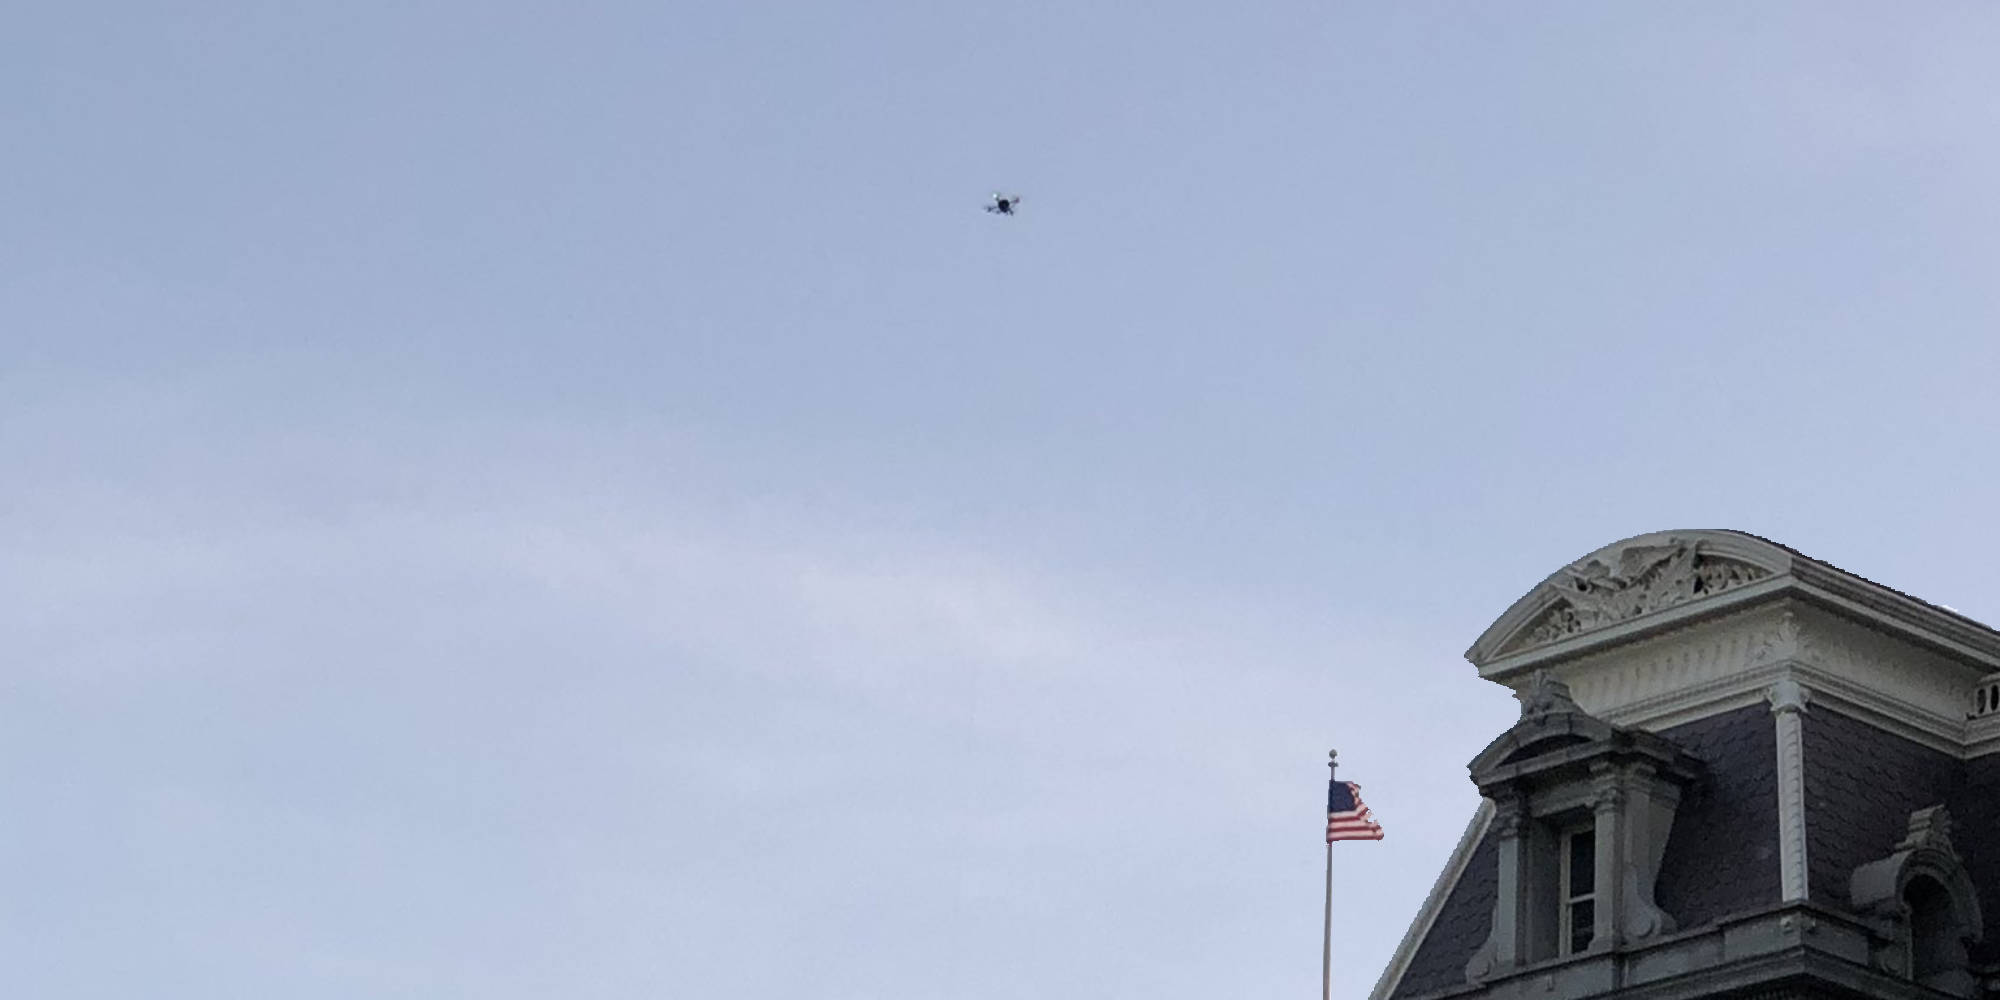 Drone spotted over the EEOB building in Washington yesterday - DroneDJ